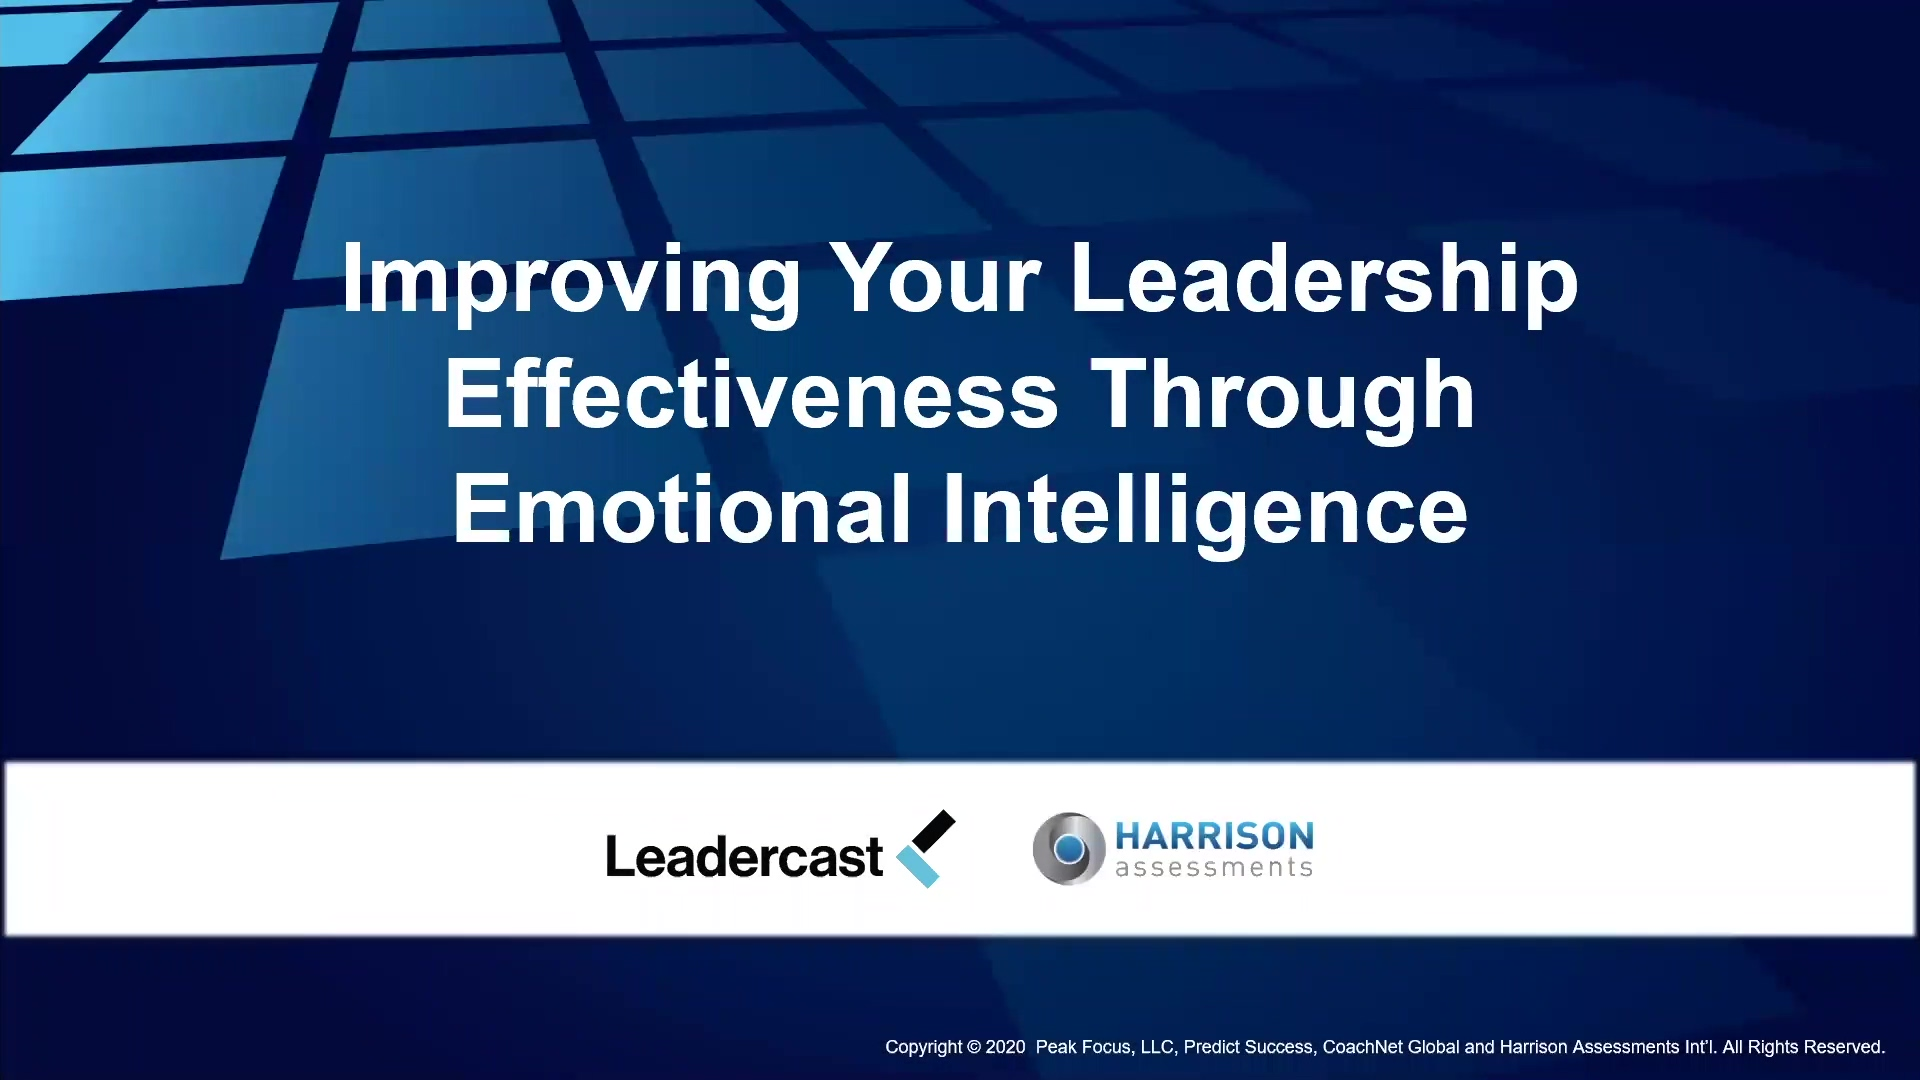 03-25 Improving Your Leadership Through Emotional Intelligence-1